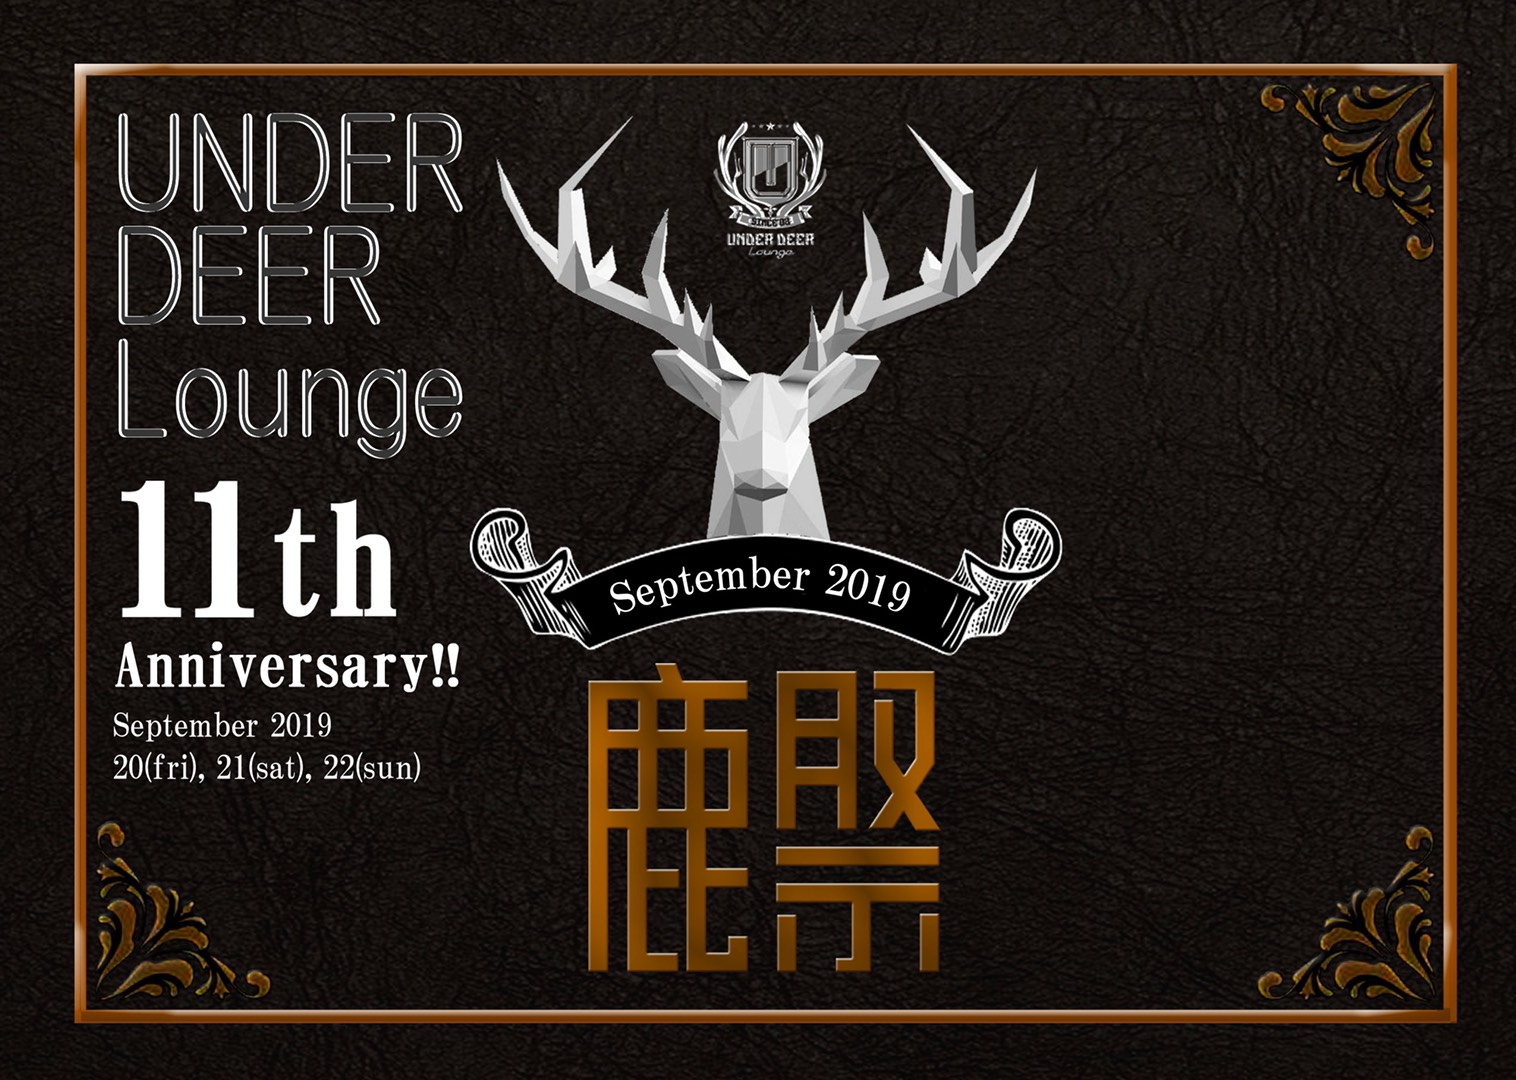 "2019.9.21(sat) UNDER DEER Lounge 11th Anniversary!! ""鹿祭"" @渋谷UNDER DEER Lounge"